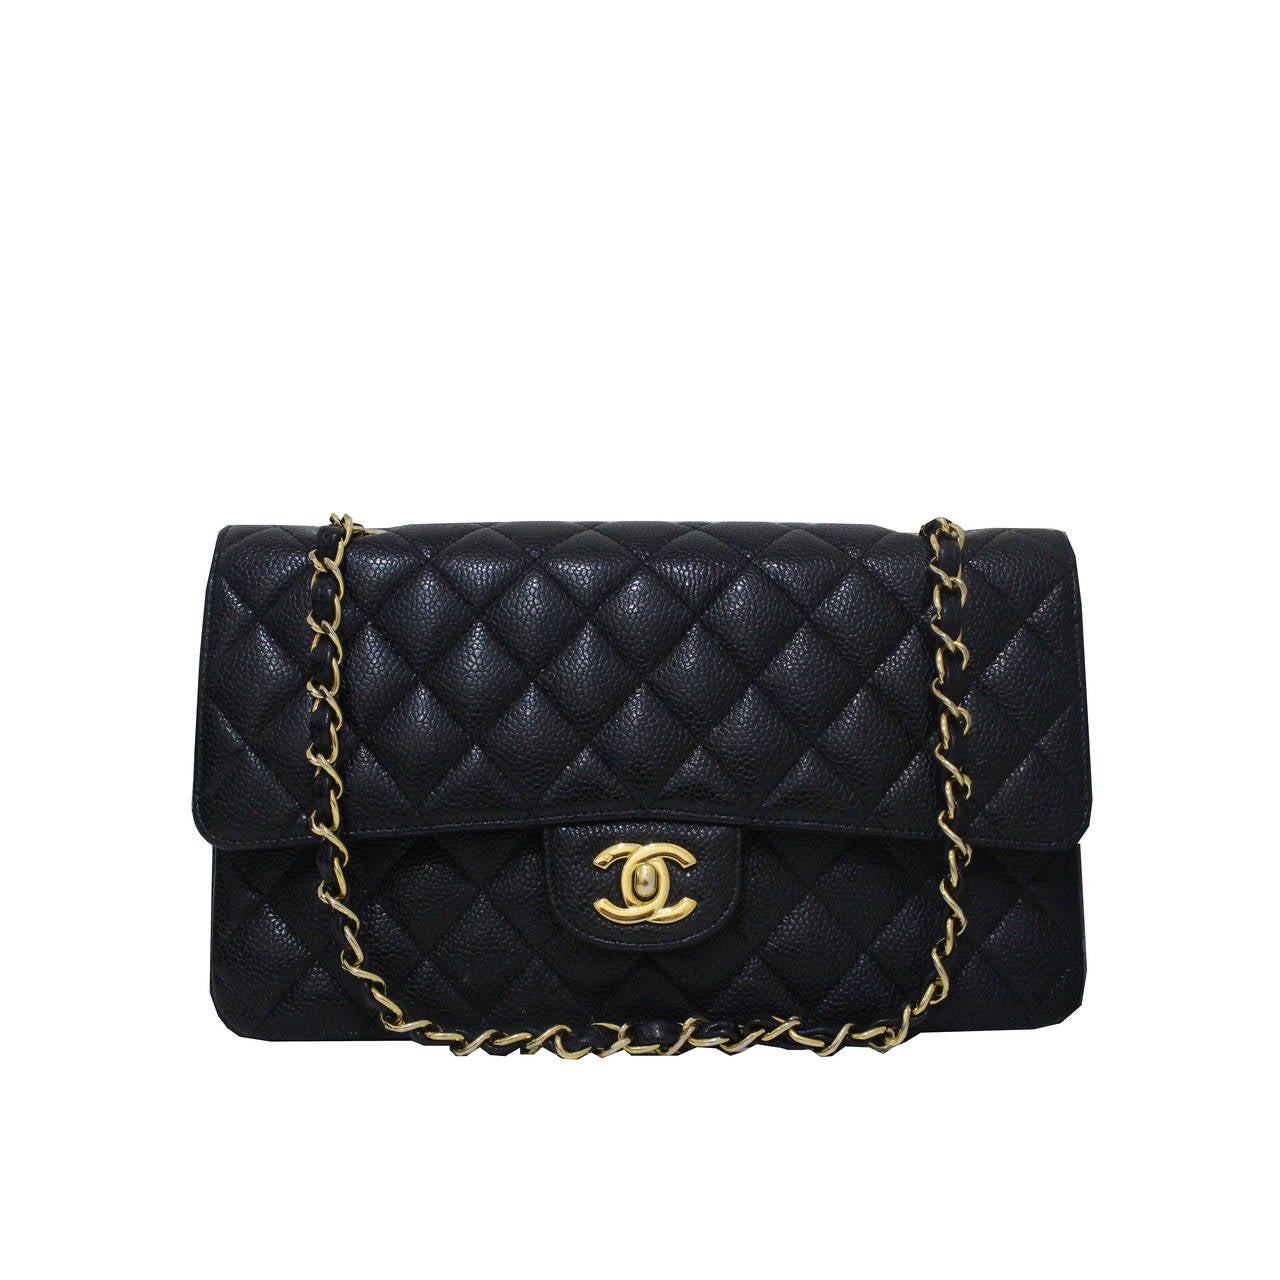 Chanel Black Quilted Caviar Classic Medium Double Flap Bag, Excellent Condition 1